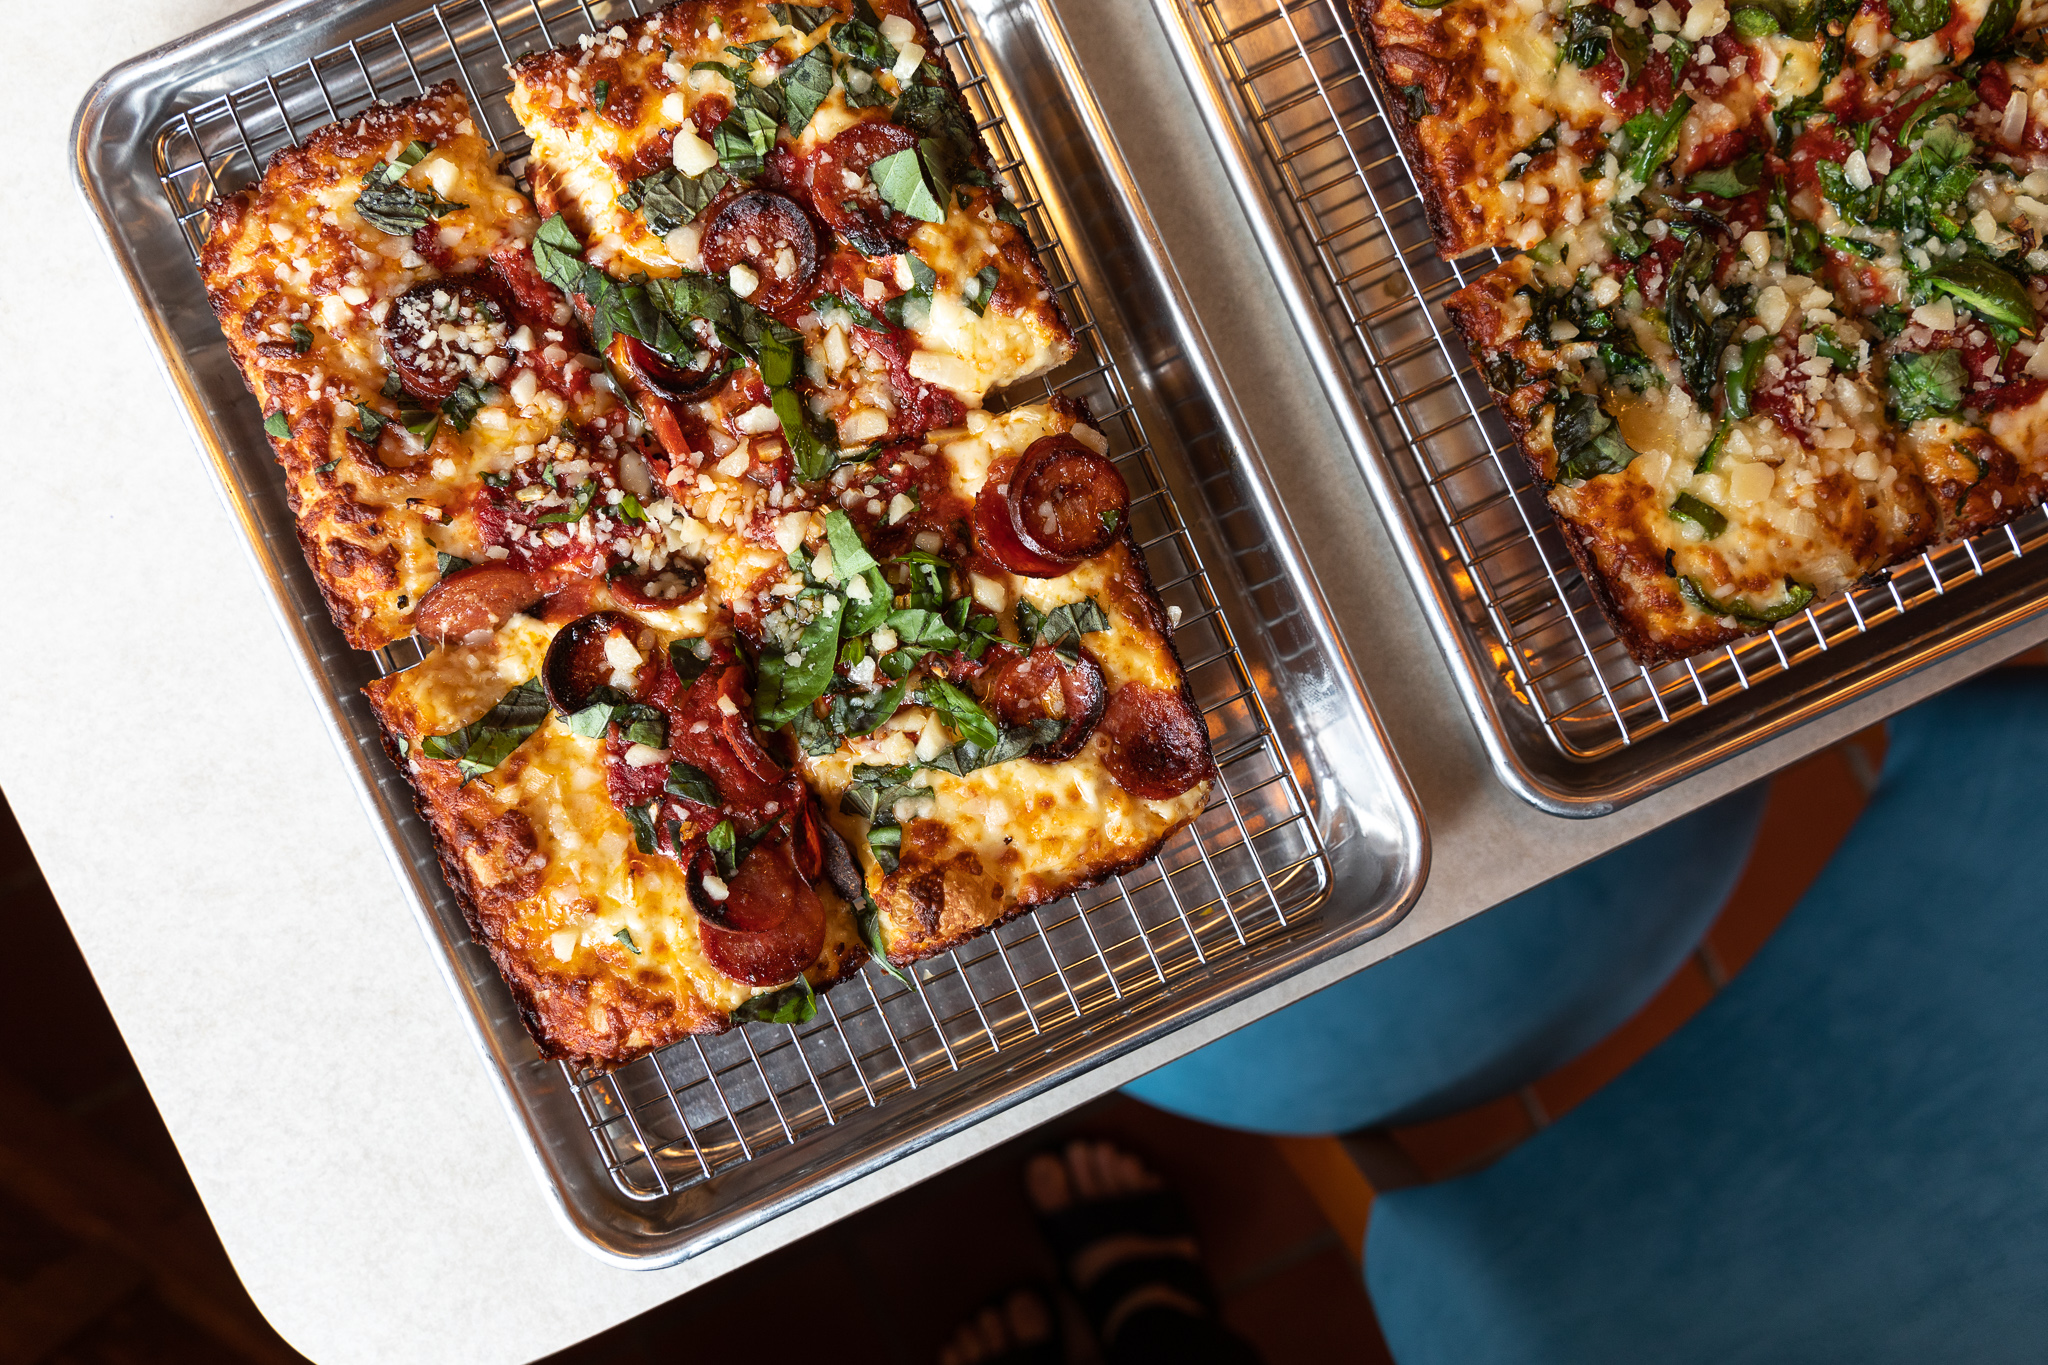 A rectangular pizza cut into four quarters with lots of fresh basil, crumbled cheese, and thick-sliced pepperoni on a cooling rack inside a metal tray.